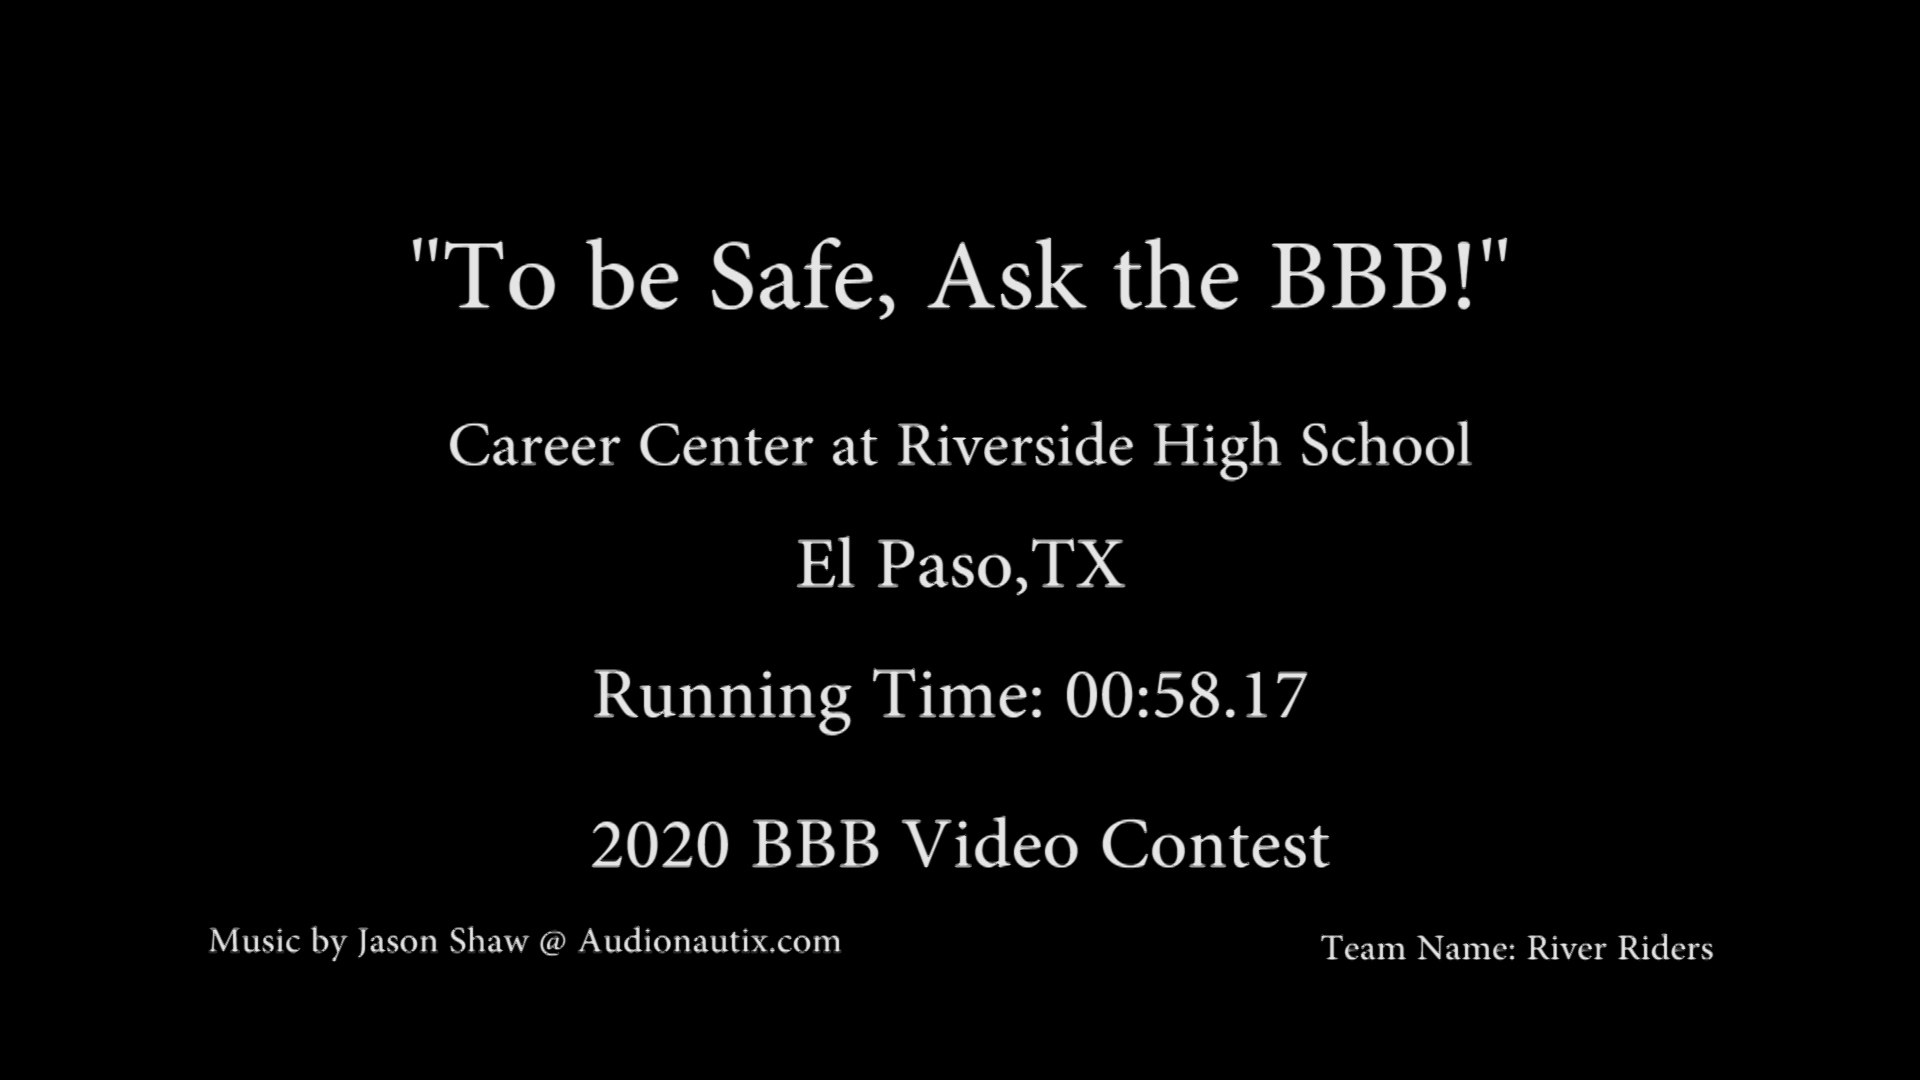 To be safe, Ask the BBB!